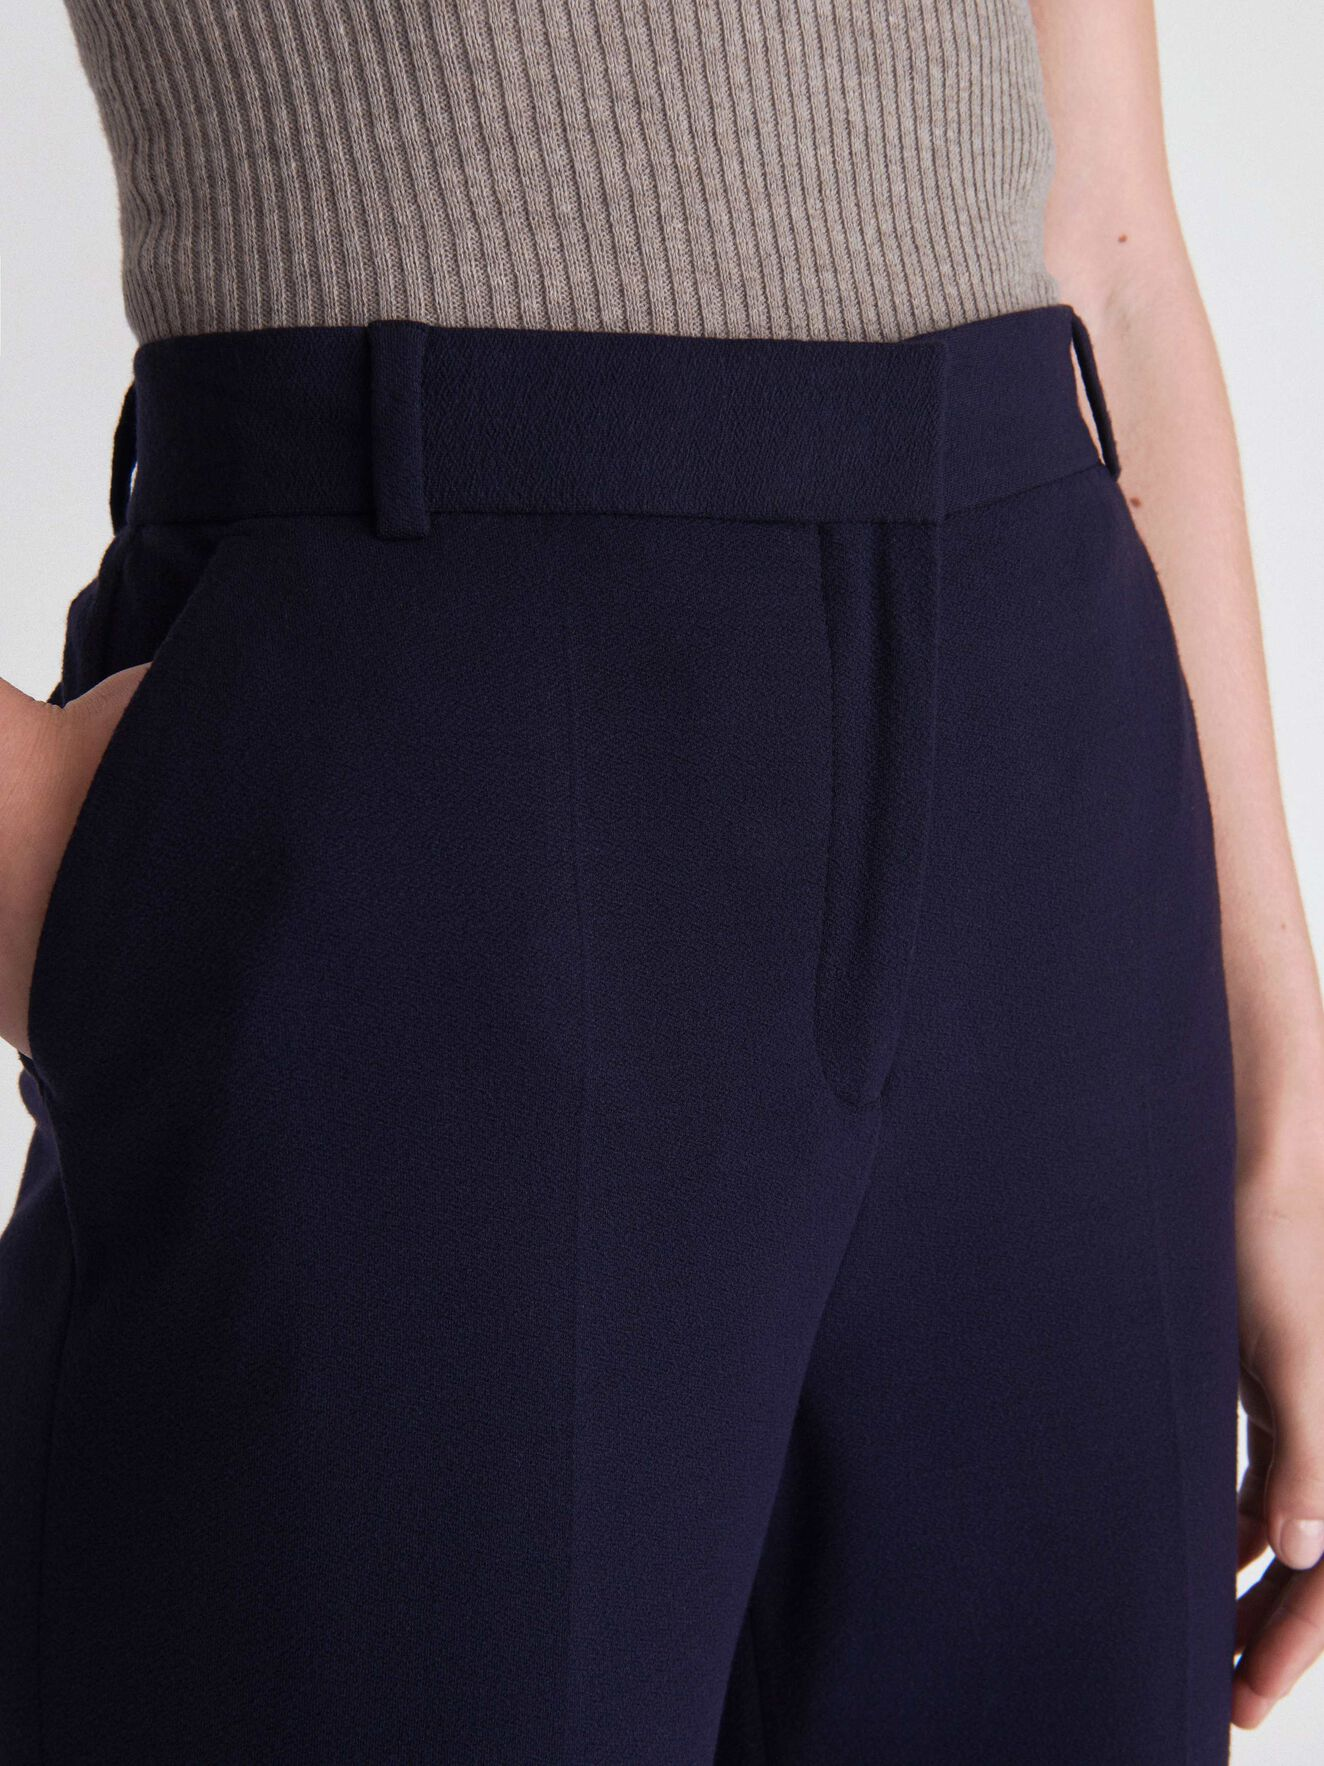 Blossom Trousers in Blue from Tiger of Sweden